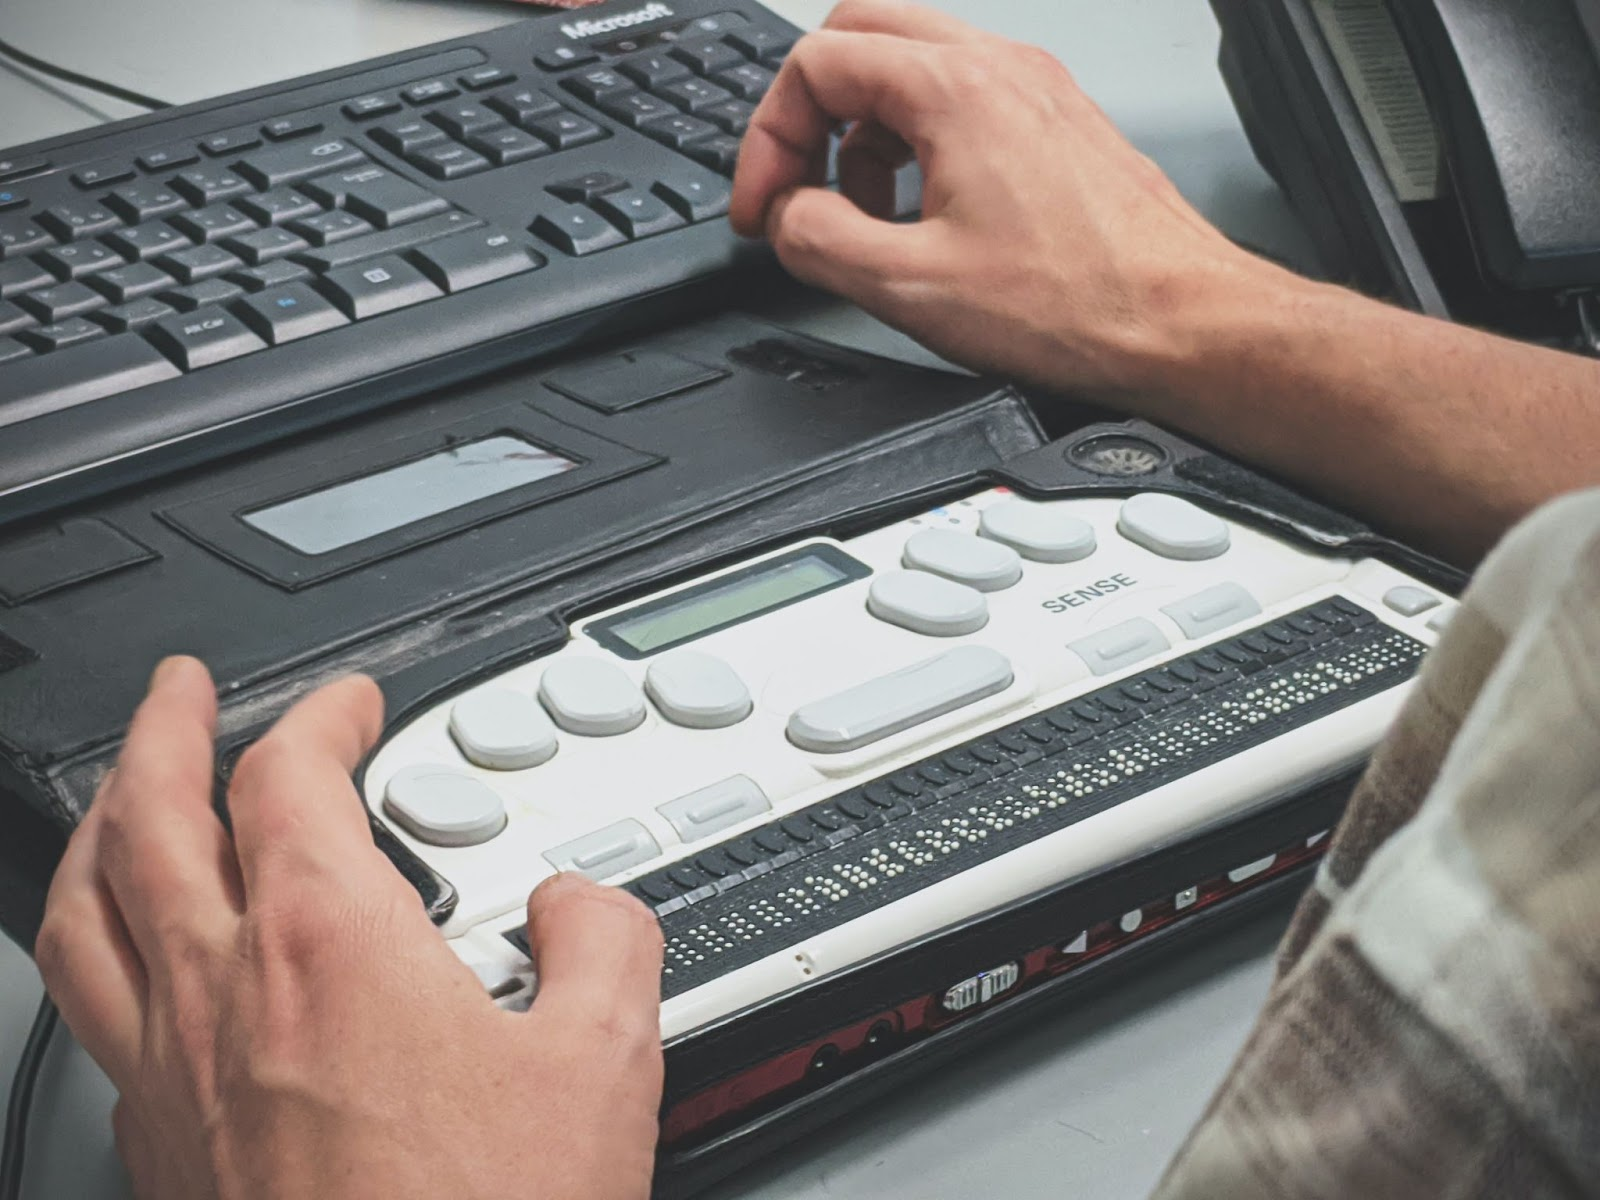 A person using a braille keyboard